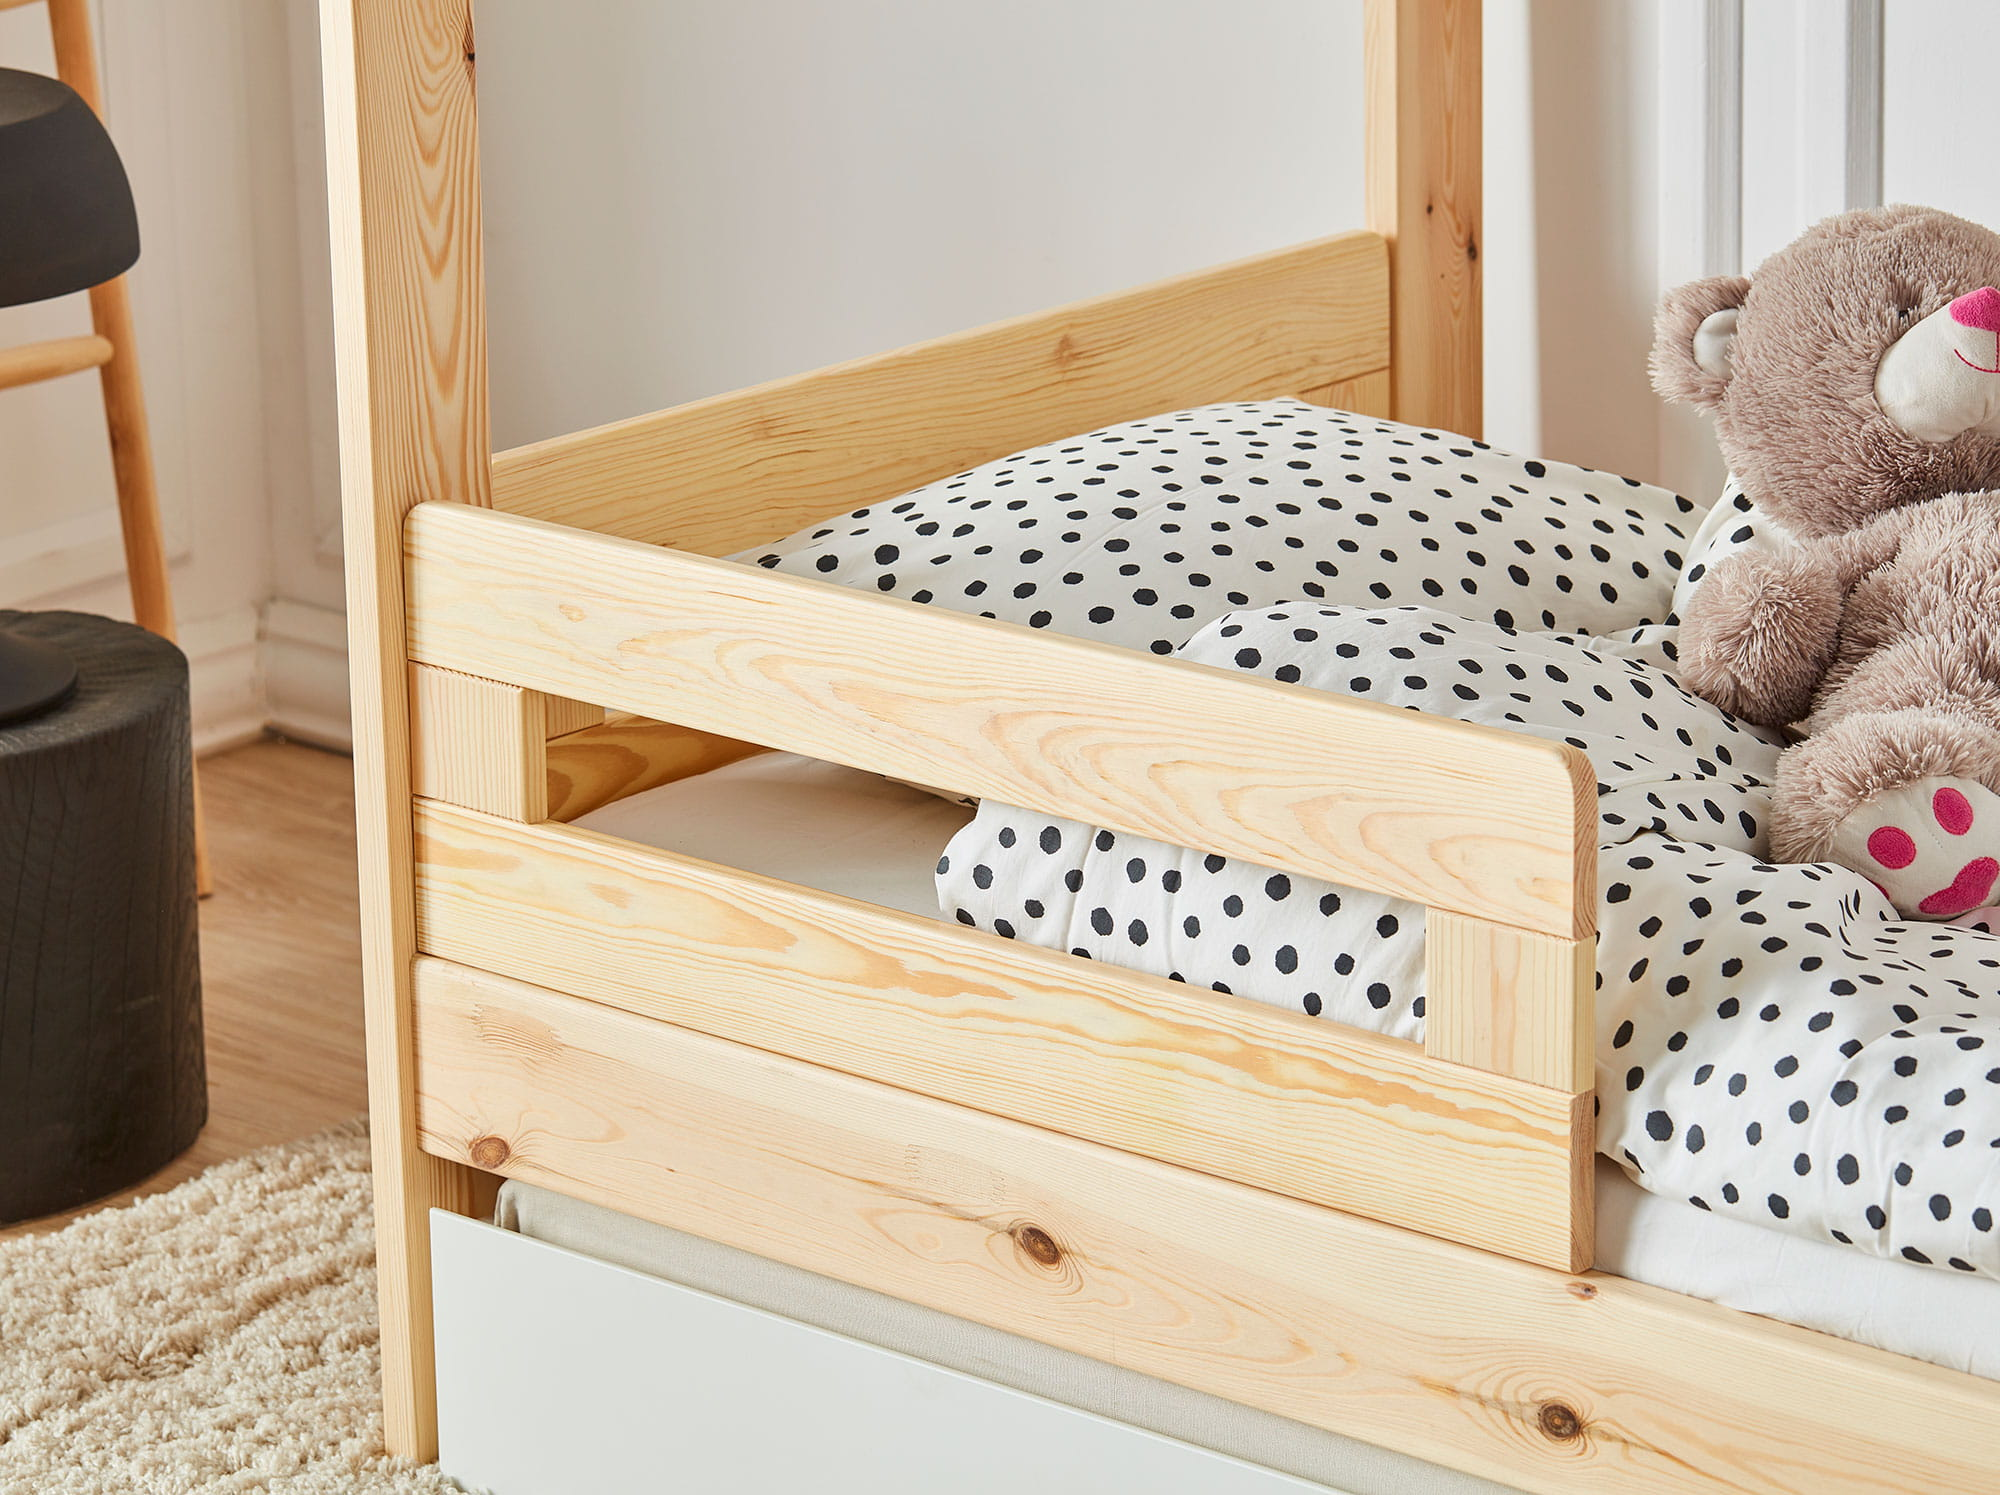 House_bed_200x90_rail_SIMPLE_2.jpg